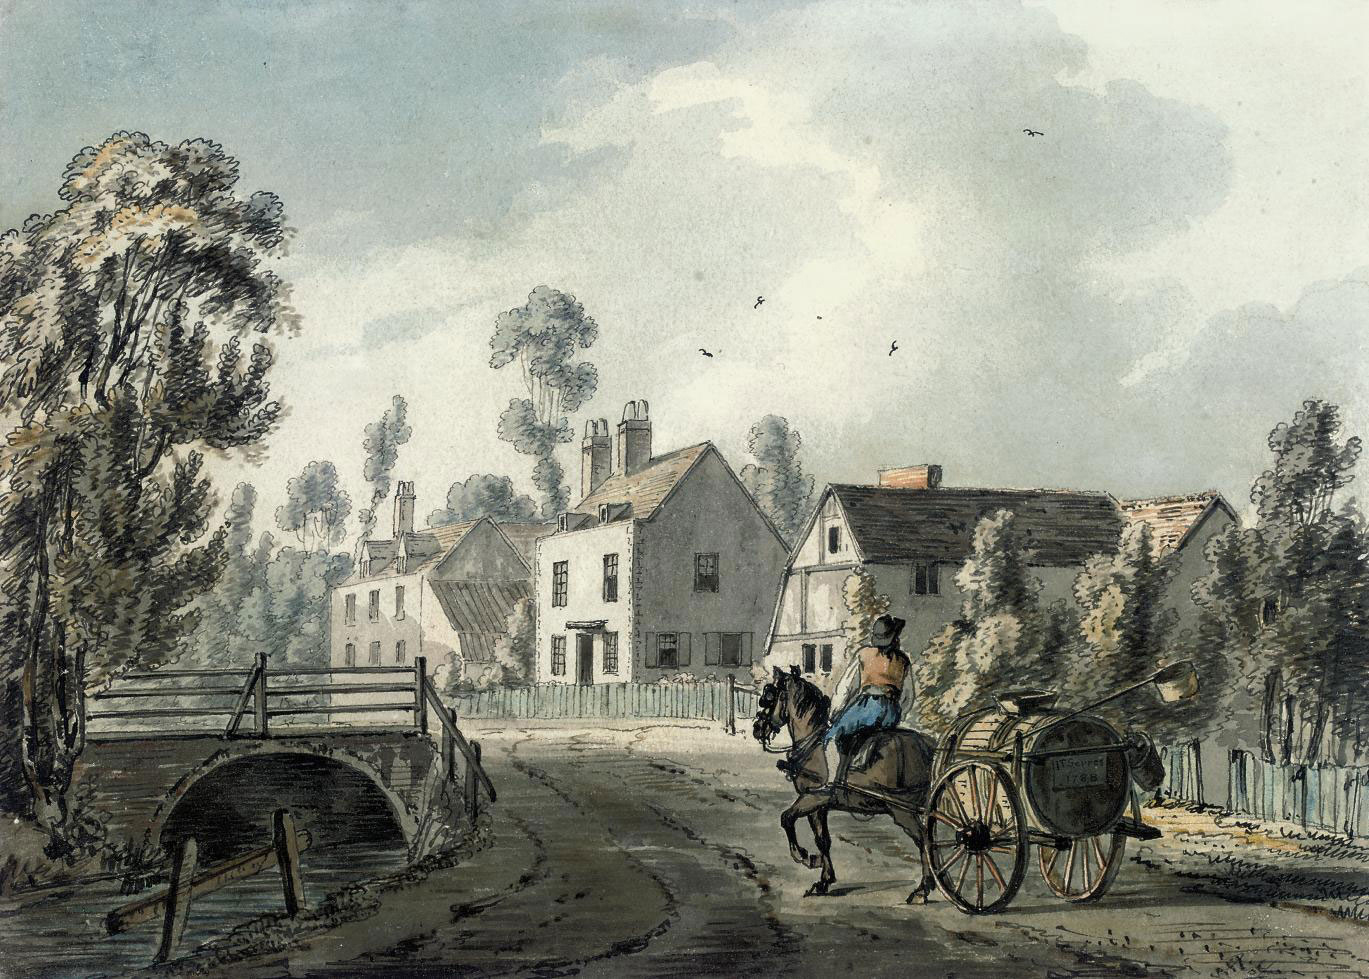 A horse-drawn cart arriving in a village